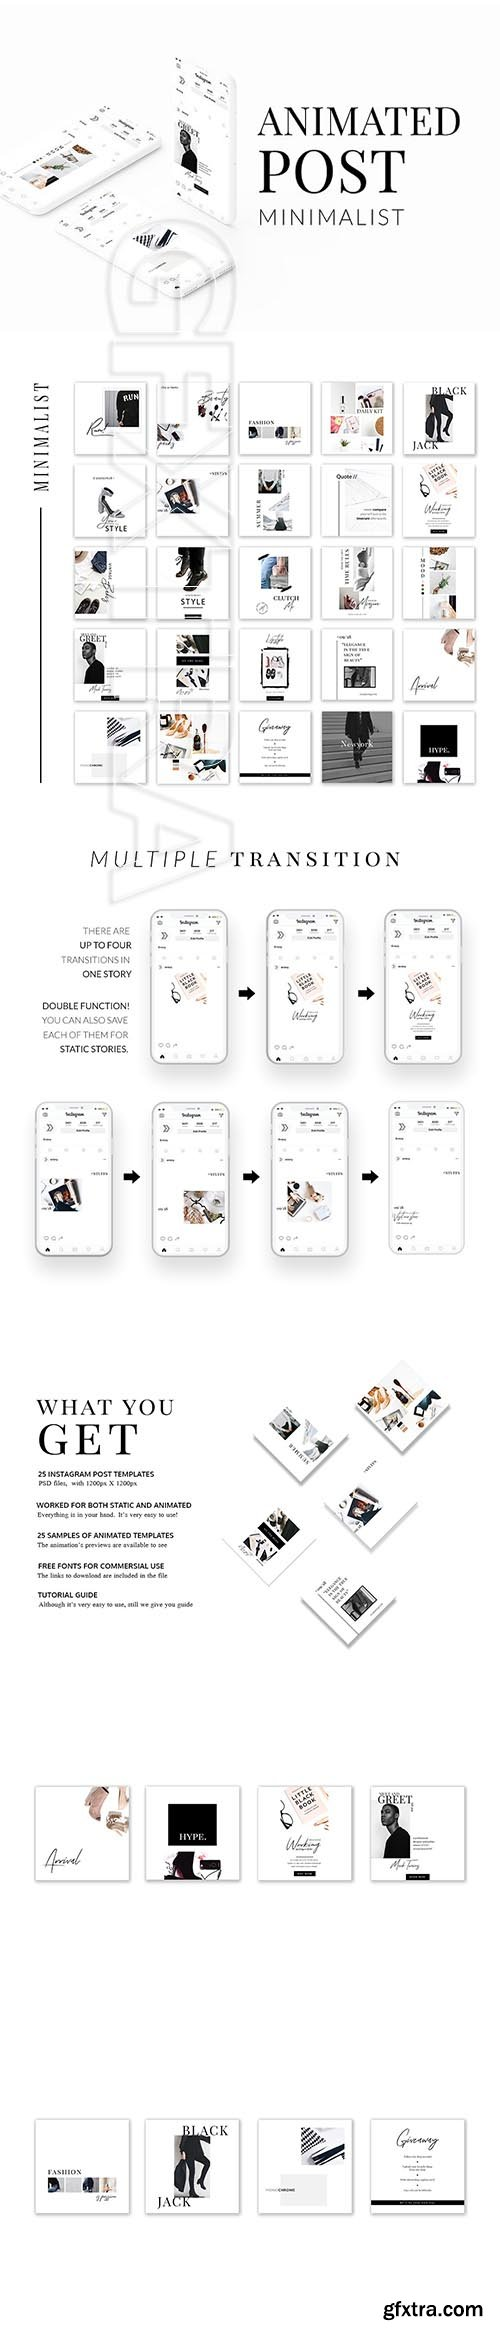 CreativeMarket - ANIMATED Instagram Minimalist Post 3325735